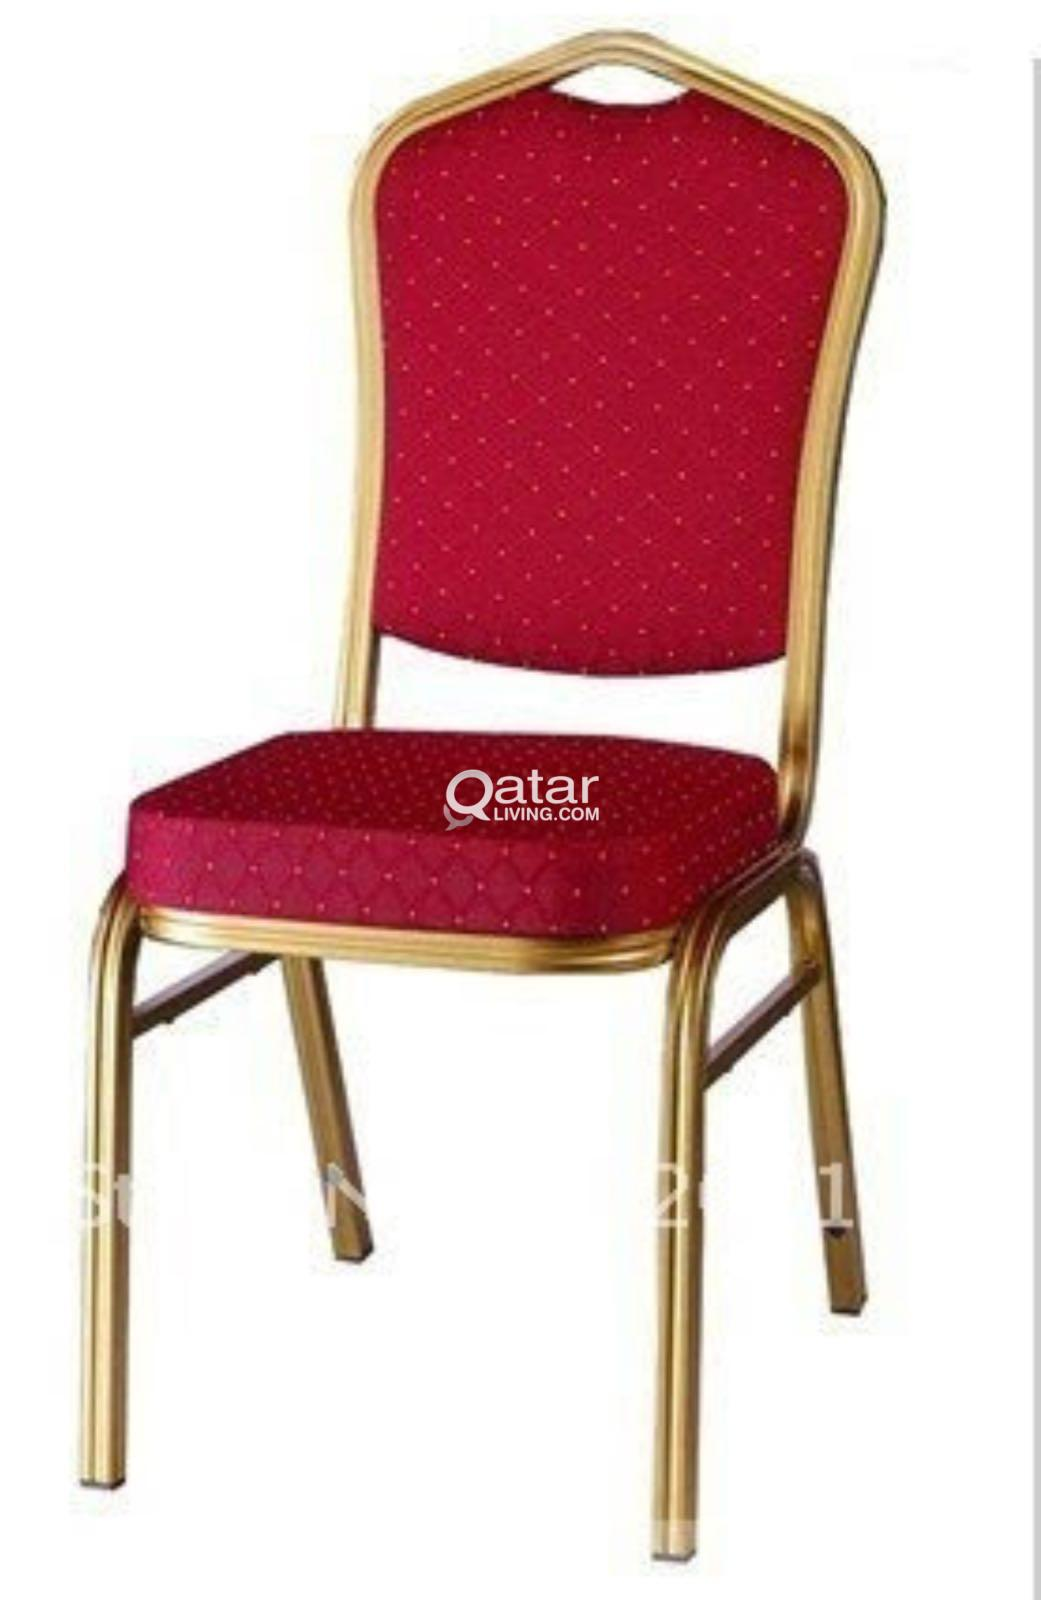 Used Banquet Chairs Banquet Chair Qatar Living